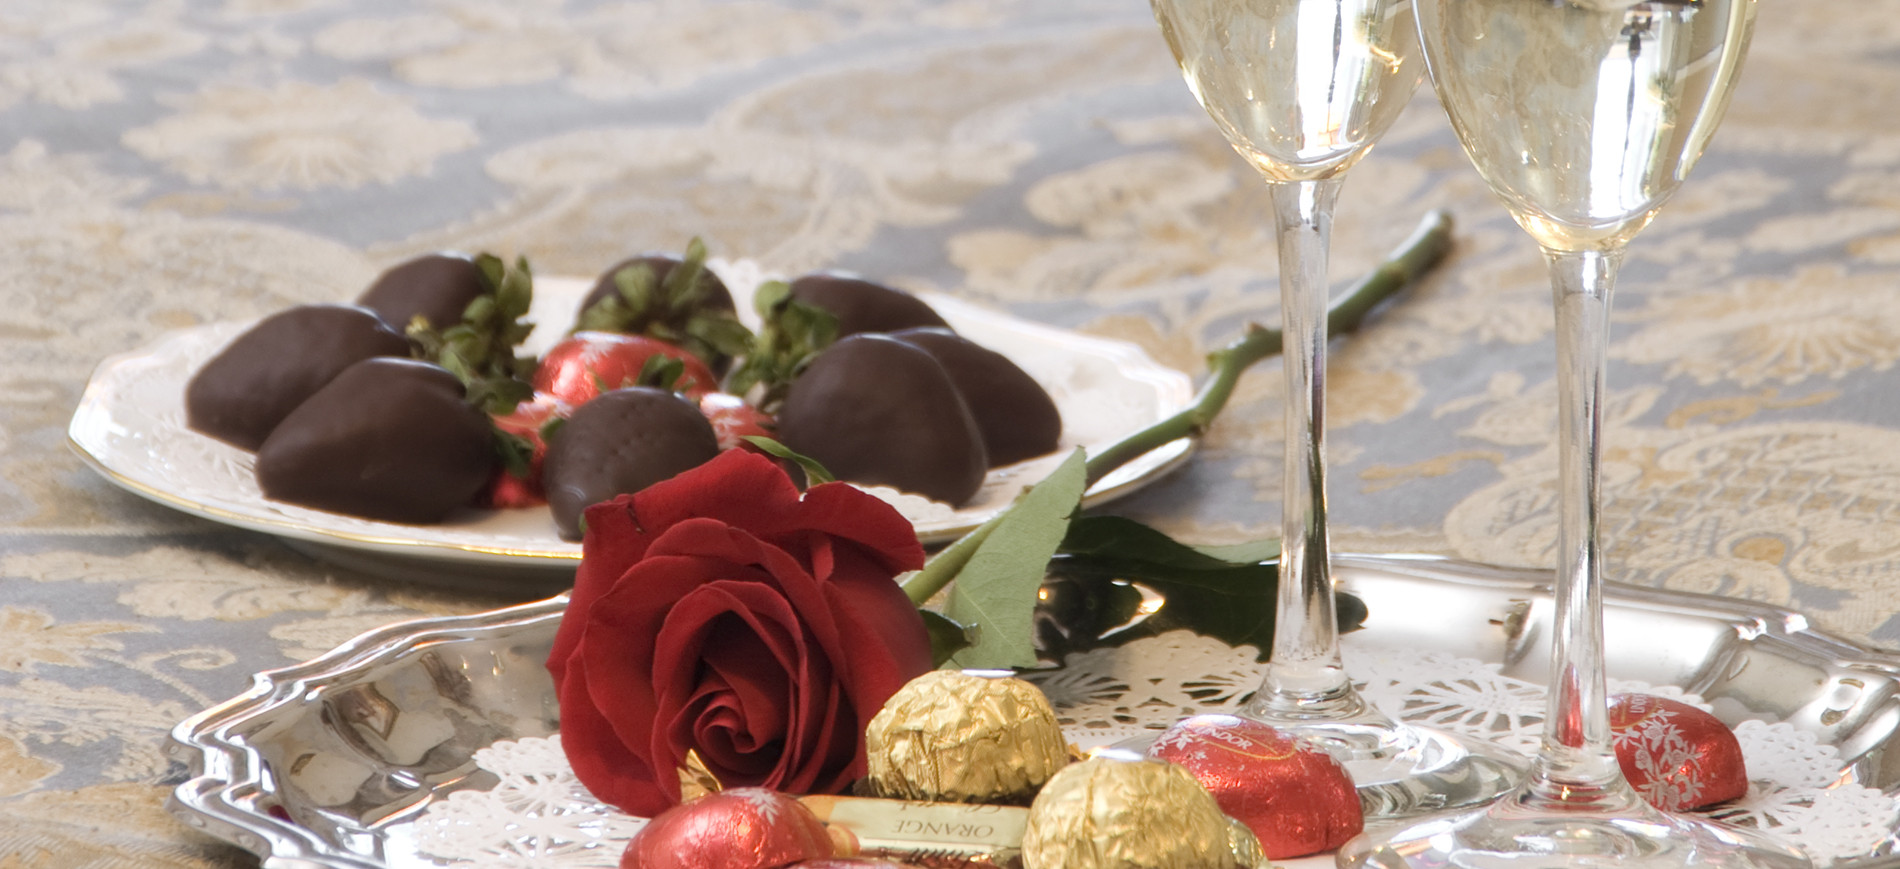 Chocolate Strawberries, rose, candy, champagne glasses on silver tray